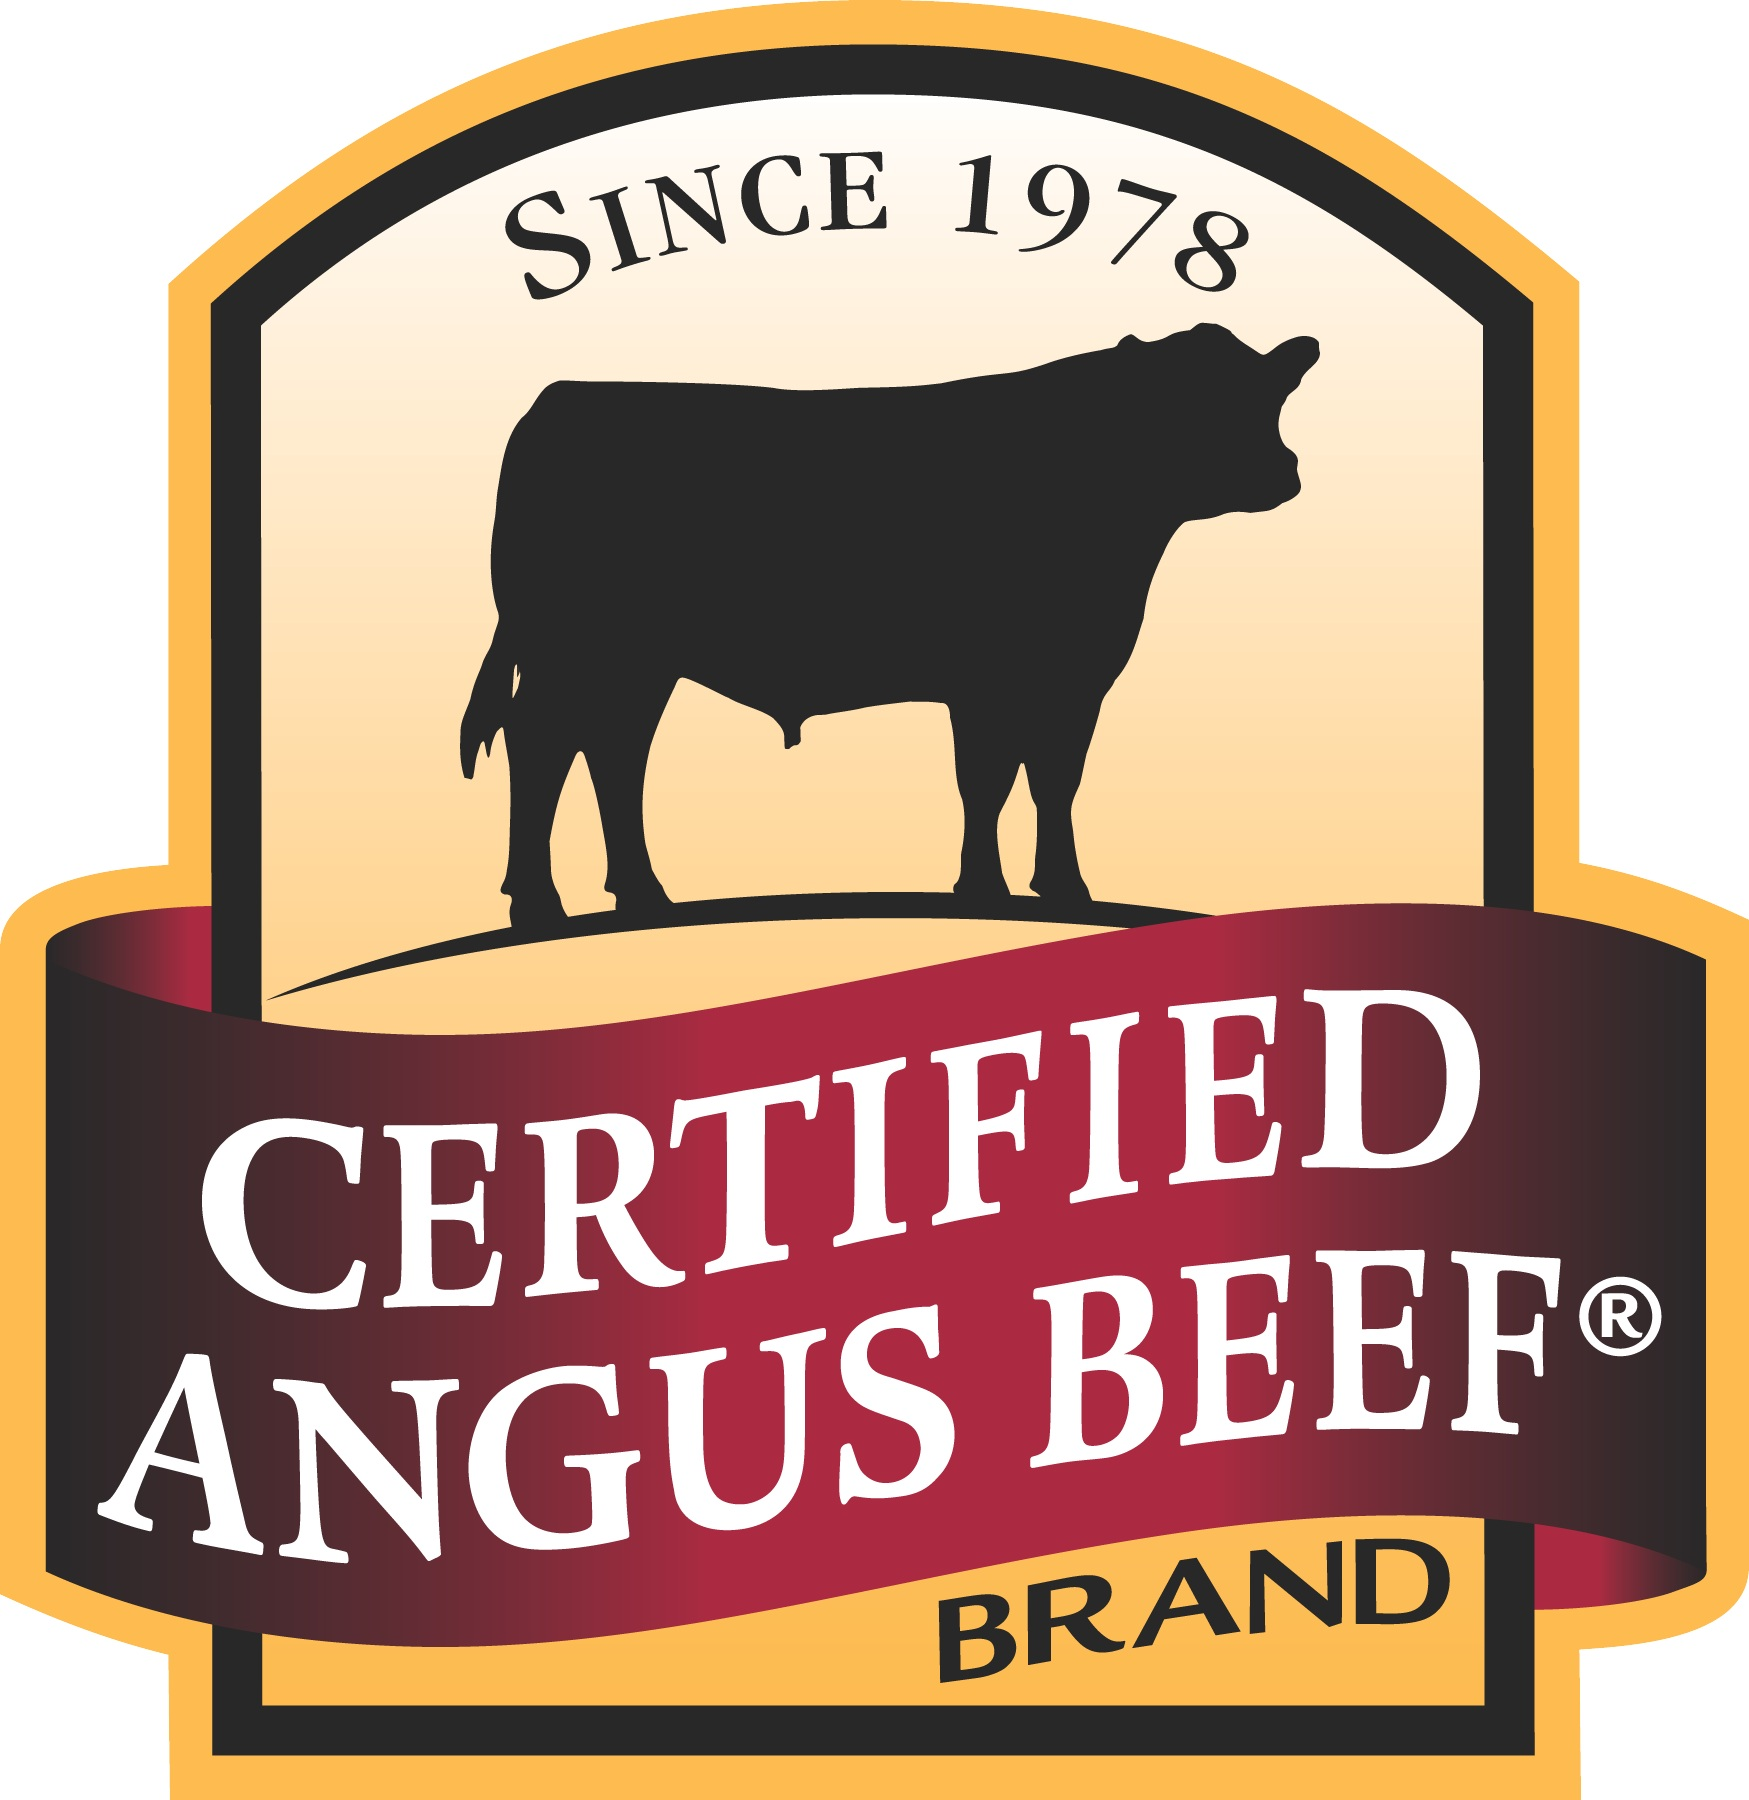 1993 – Certified as First Licensed Retail Distributor of Certified Angus Beef in Canada